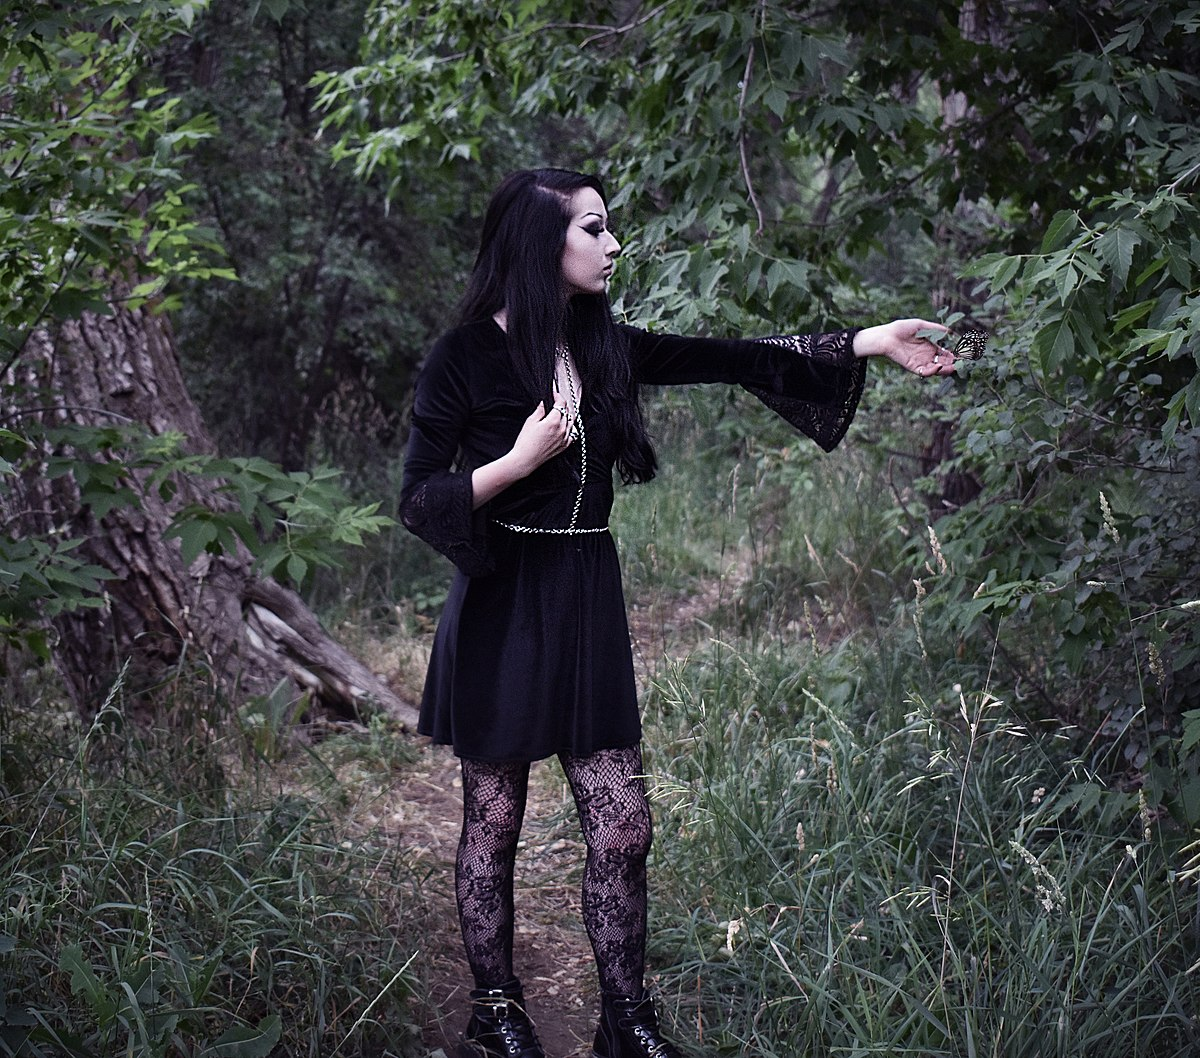 goth subculture As everything evolves, so does goth subculture there is so little left from  traditional gothic scene, such as big hair, pointy shoes and music.